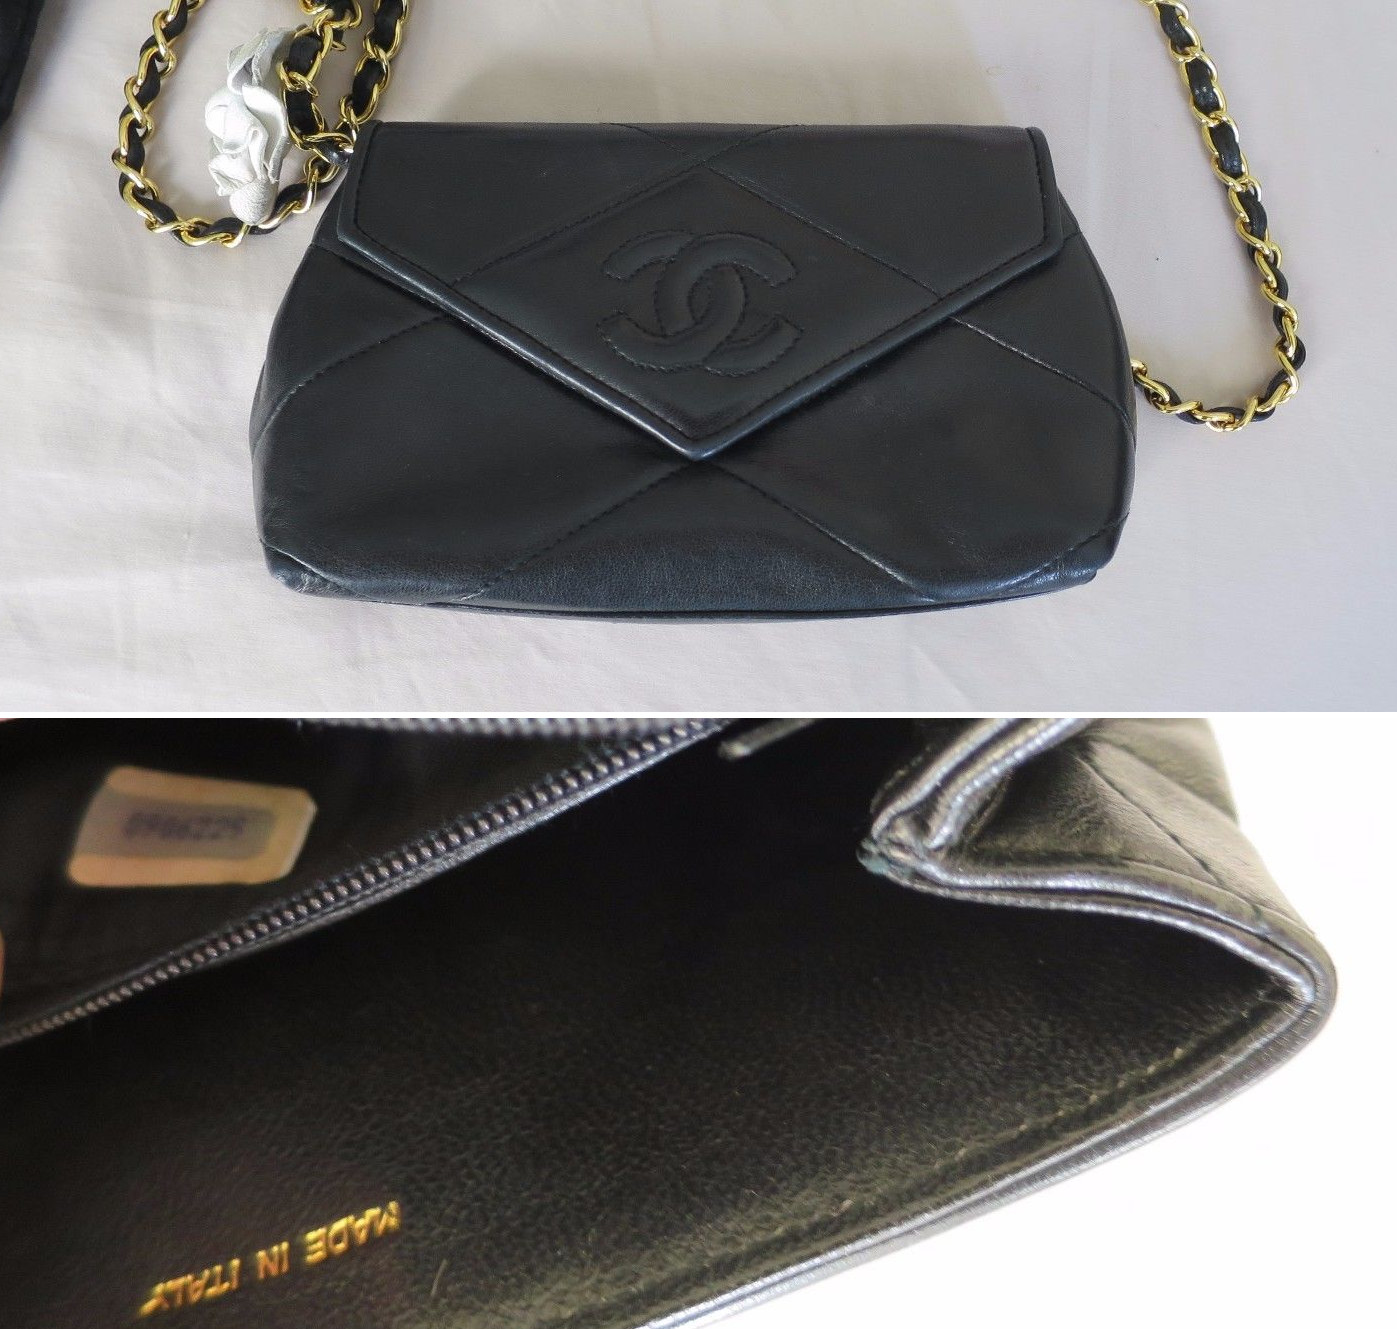 2438e80587da Vintage Chanel Handbag Authentication